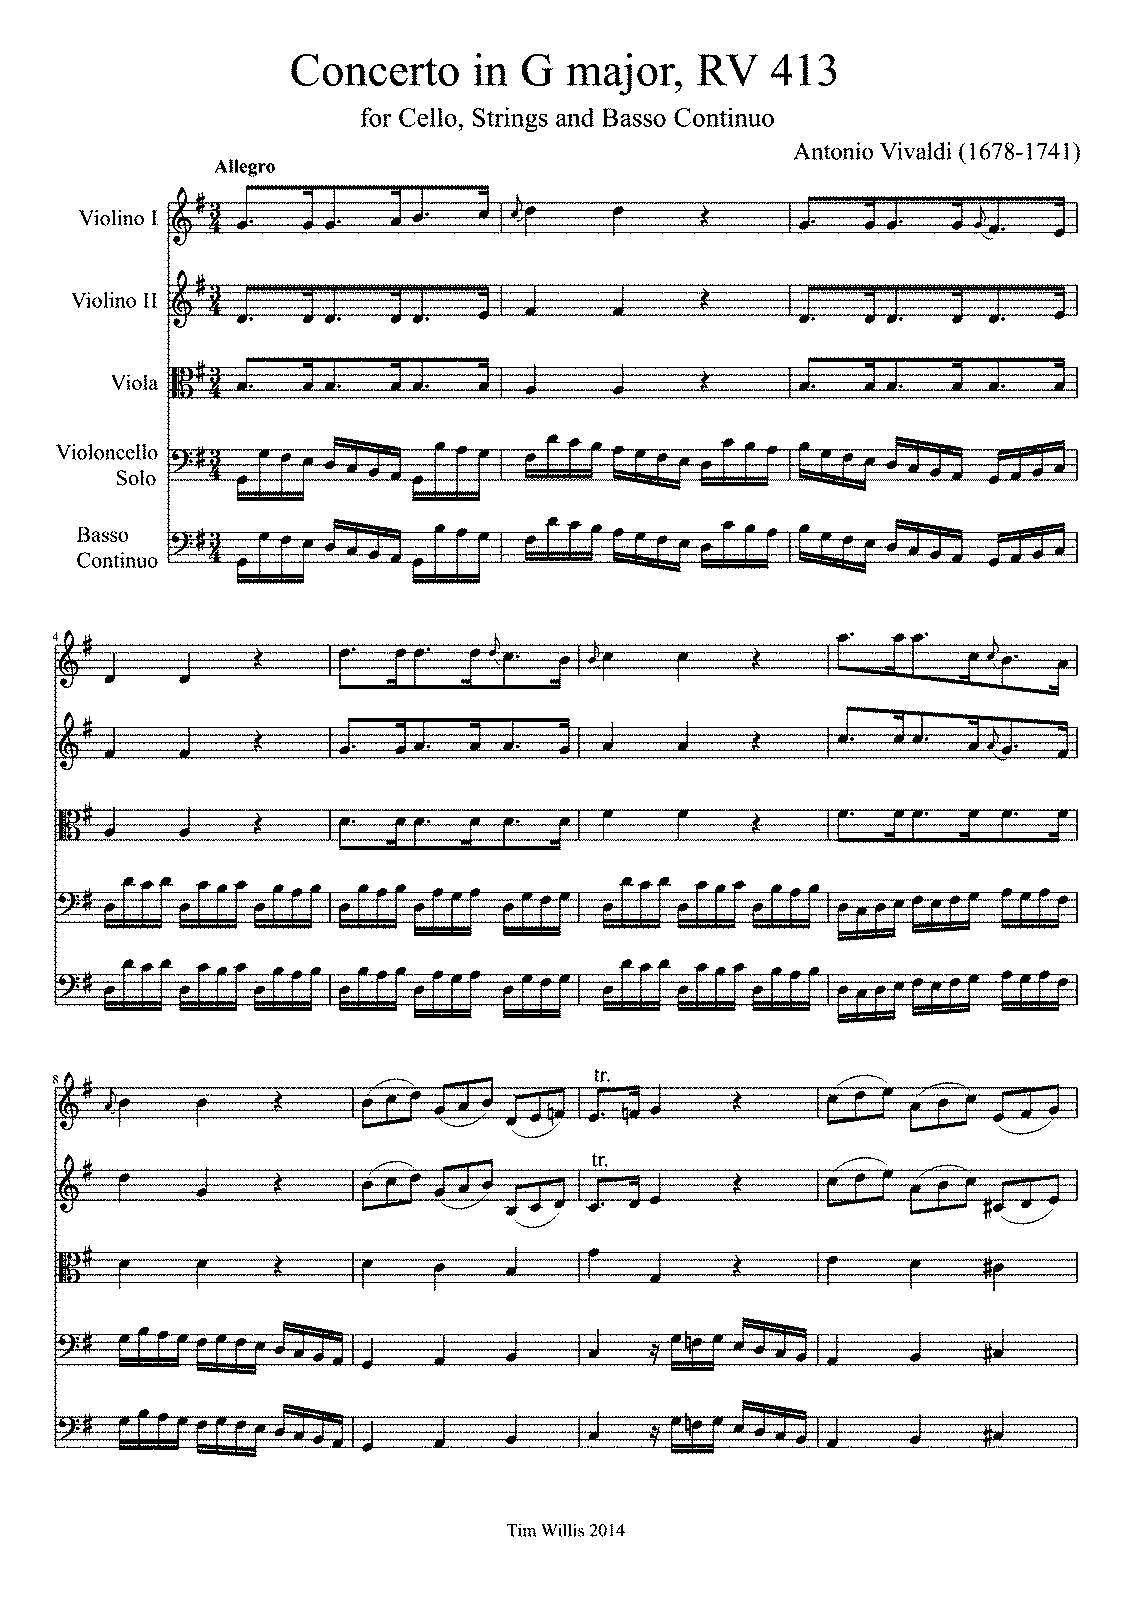 PMLP61891-Concerto in G major, RV 413.pdf